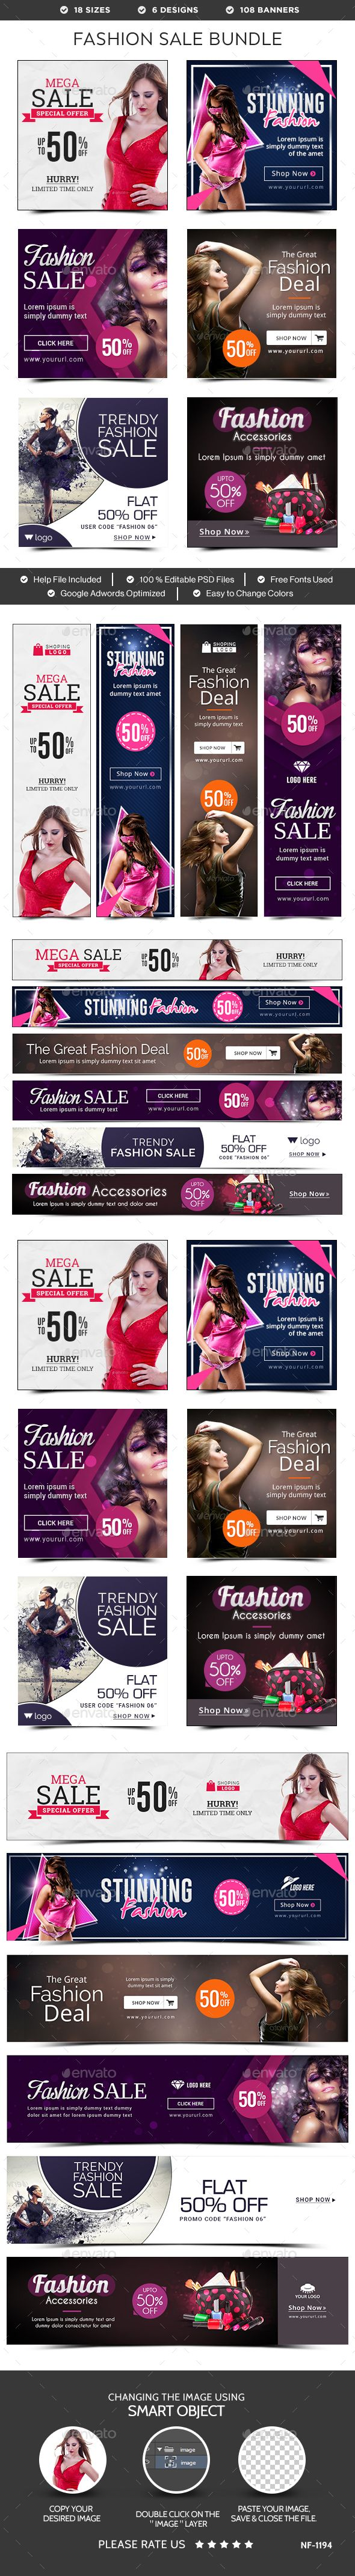 Fashion Sale Banners Bundle  6 Sets — Photoshop PSD #clothing #animated banner • Available here → https://graphicriver.net/item/fashion-sale-banners-bundle-6-sets/15633748?ref=pxcr